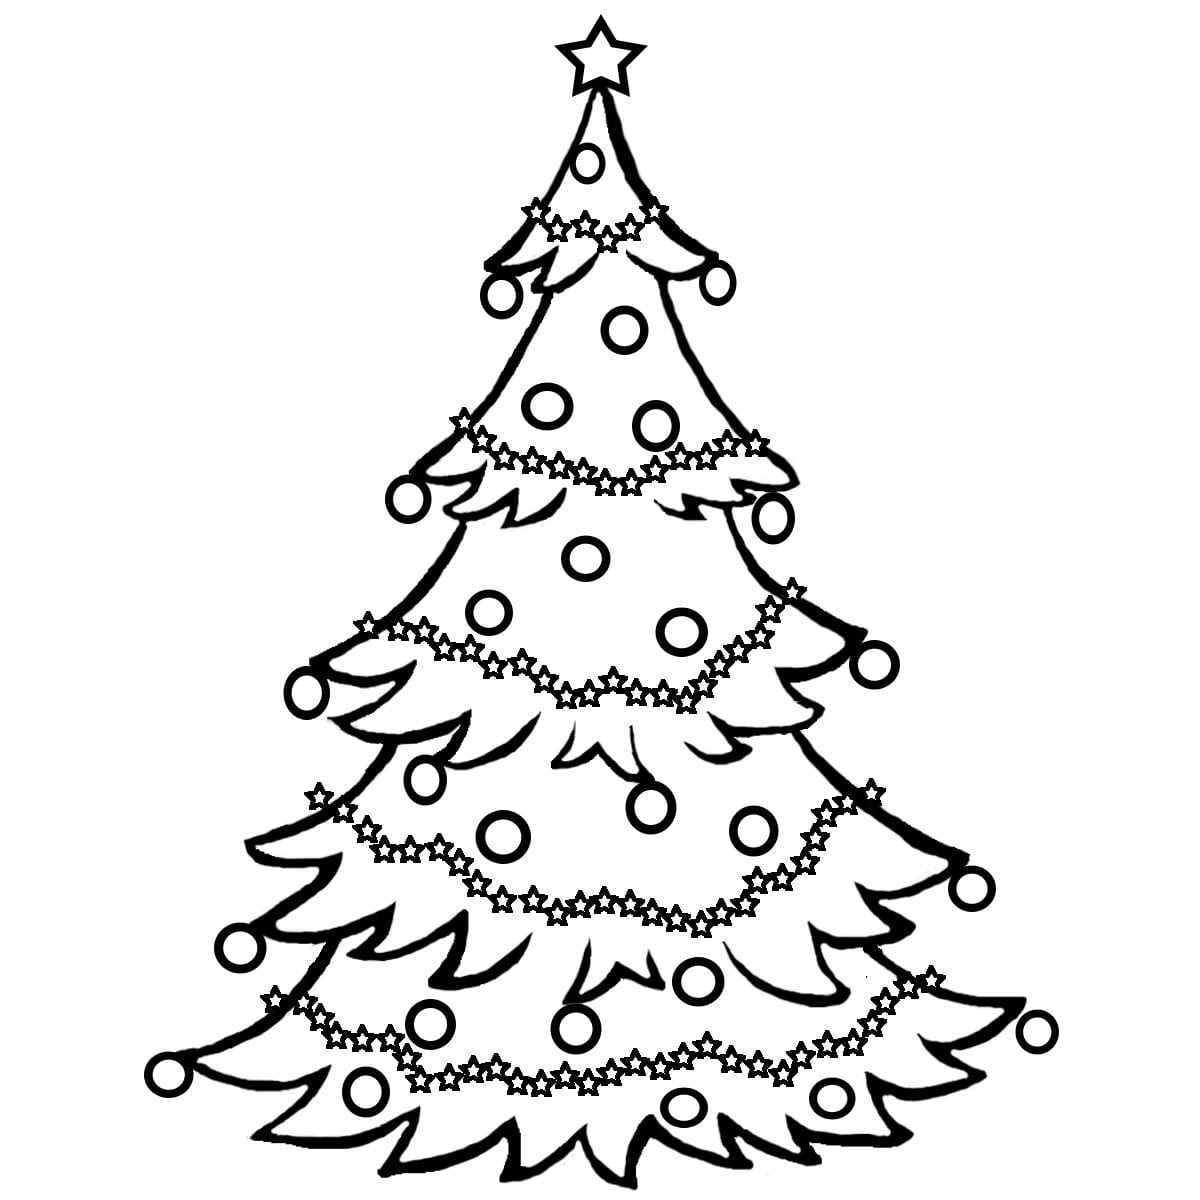 Christmas Tree Coloring Page Free Color Rallytv Org With